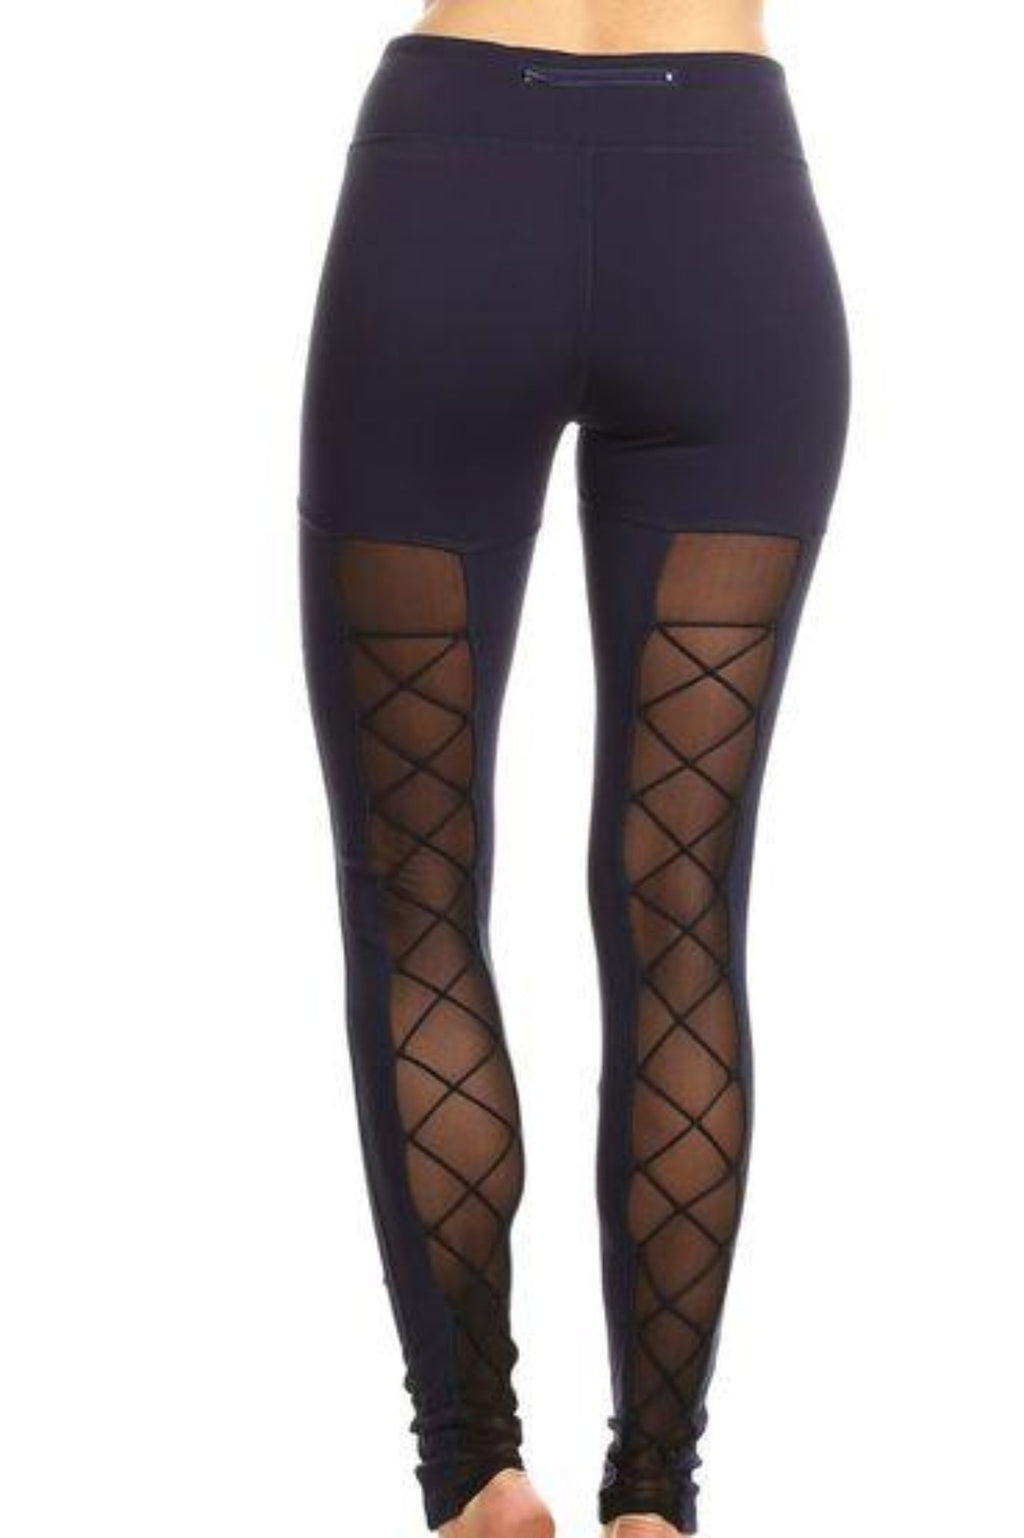 Meena Mesh Active Leggings Clothing Fair Shade S Navy 87% Nylon, 13% Spandex